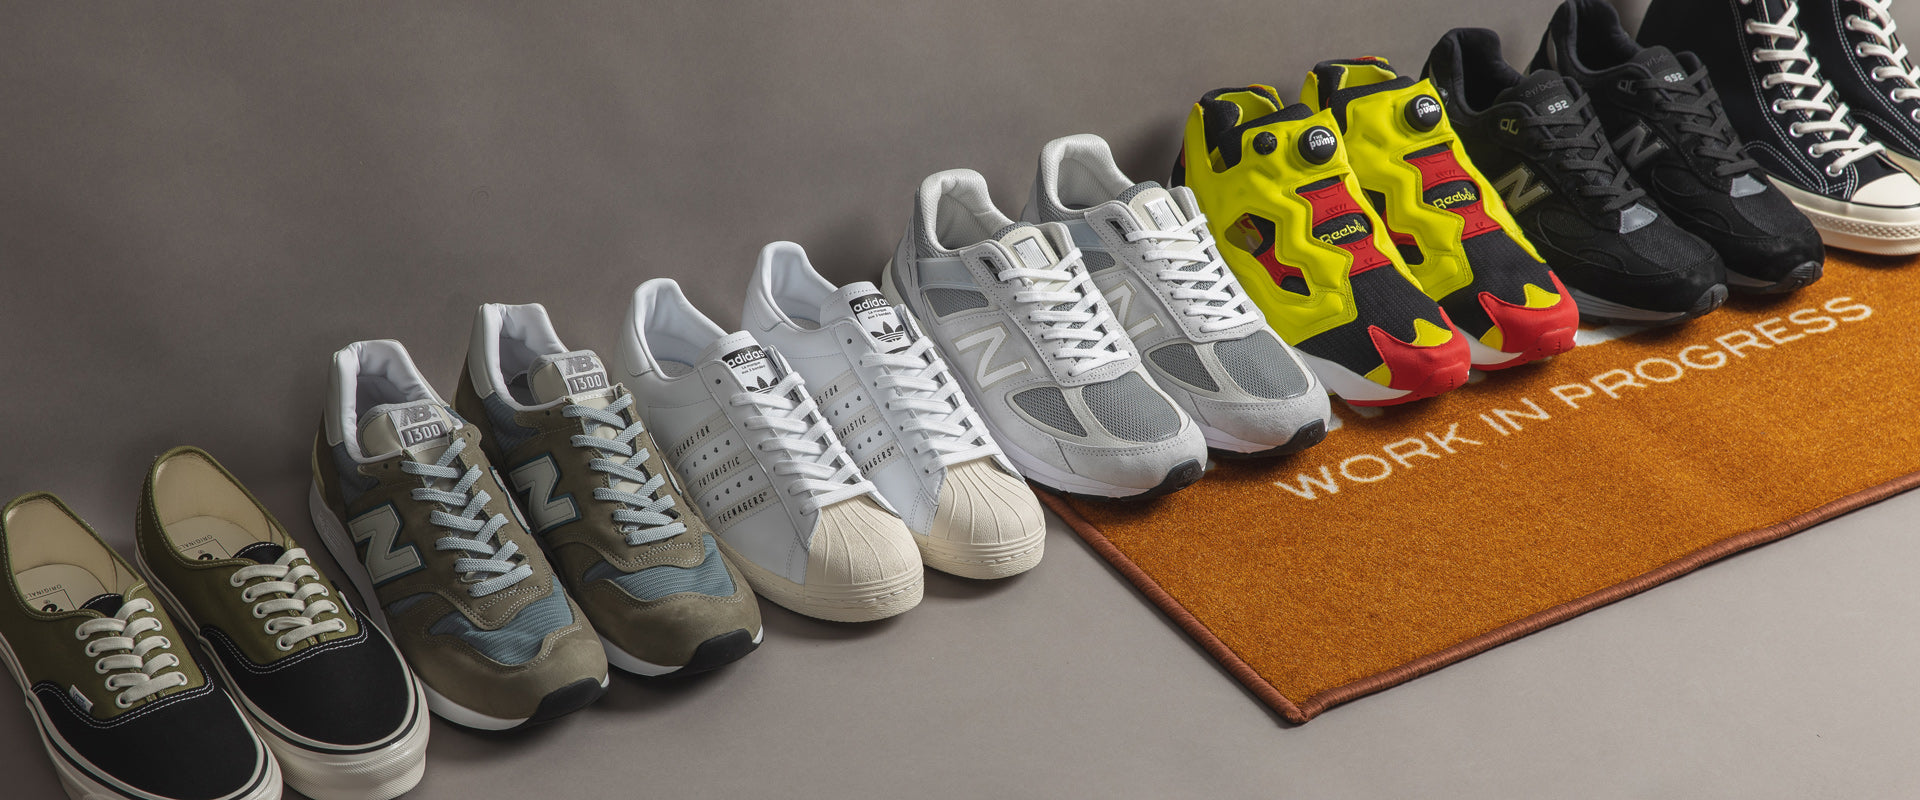 Crossover Summer Sneakers